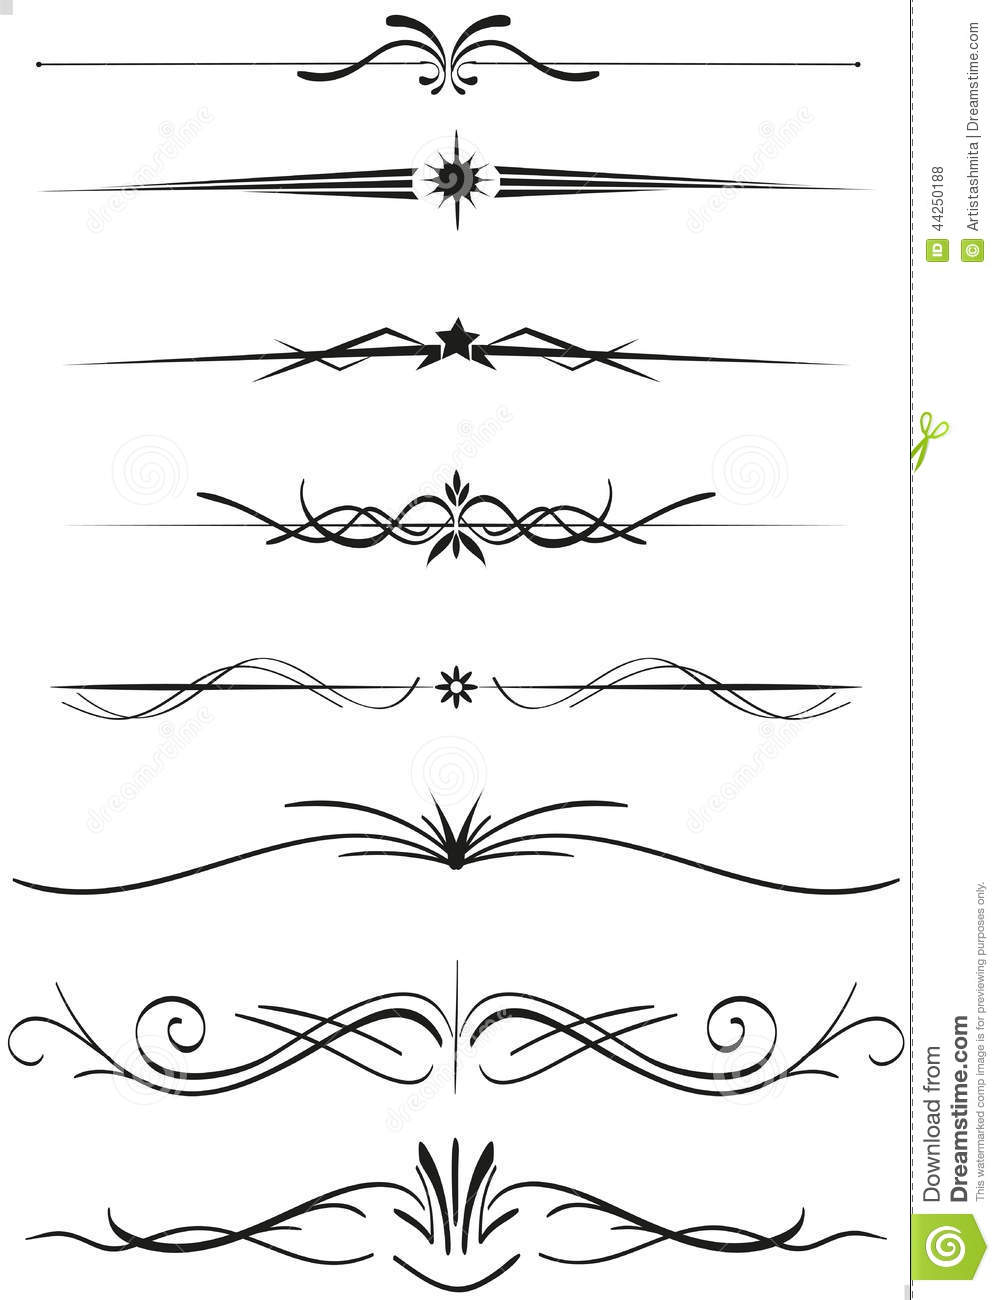 R gles de diviseurs des textes illustration de vecteur for A style text decoration